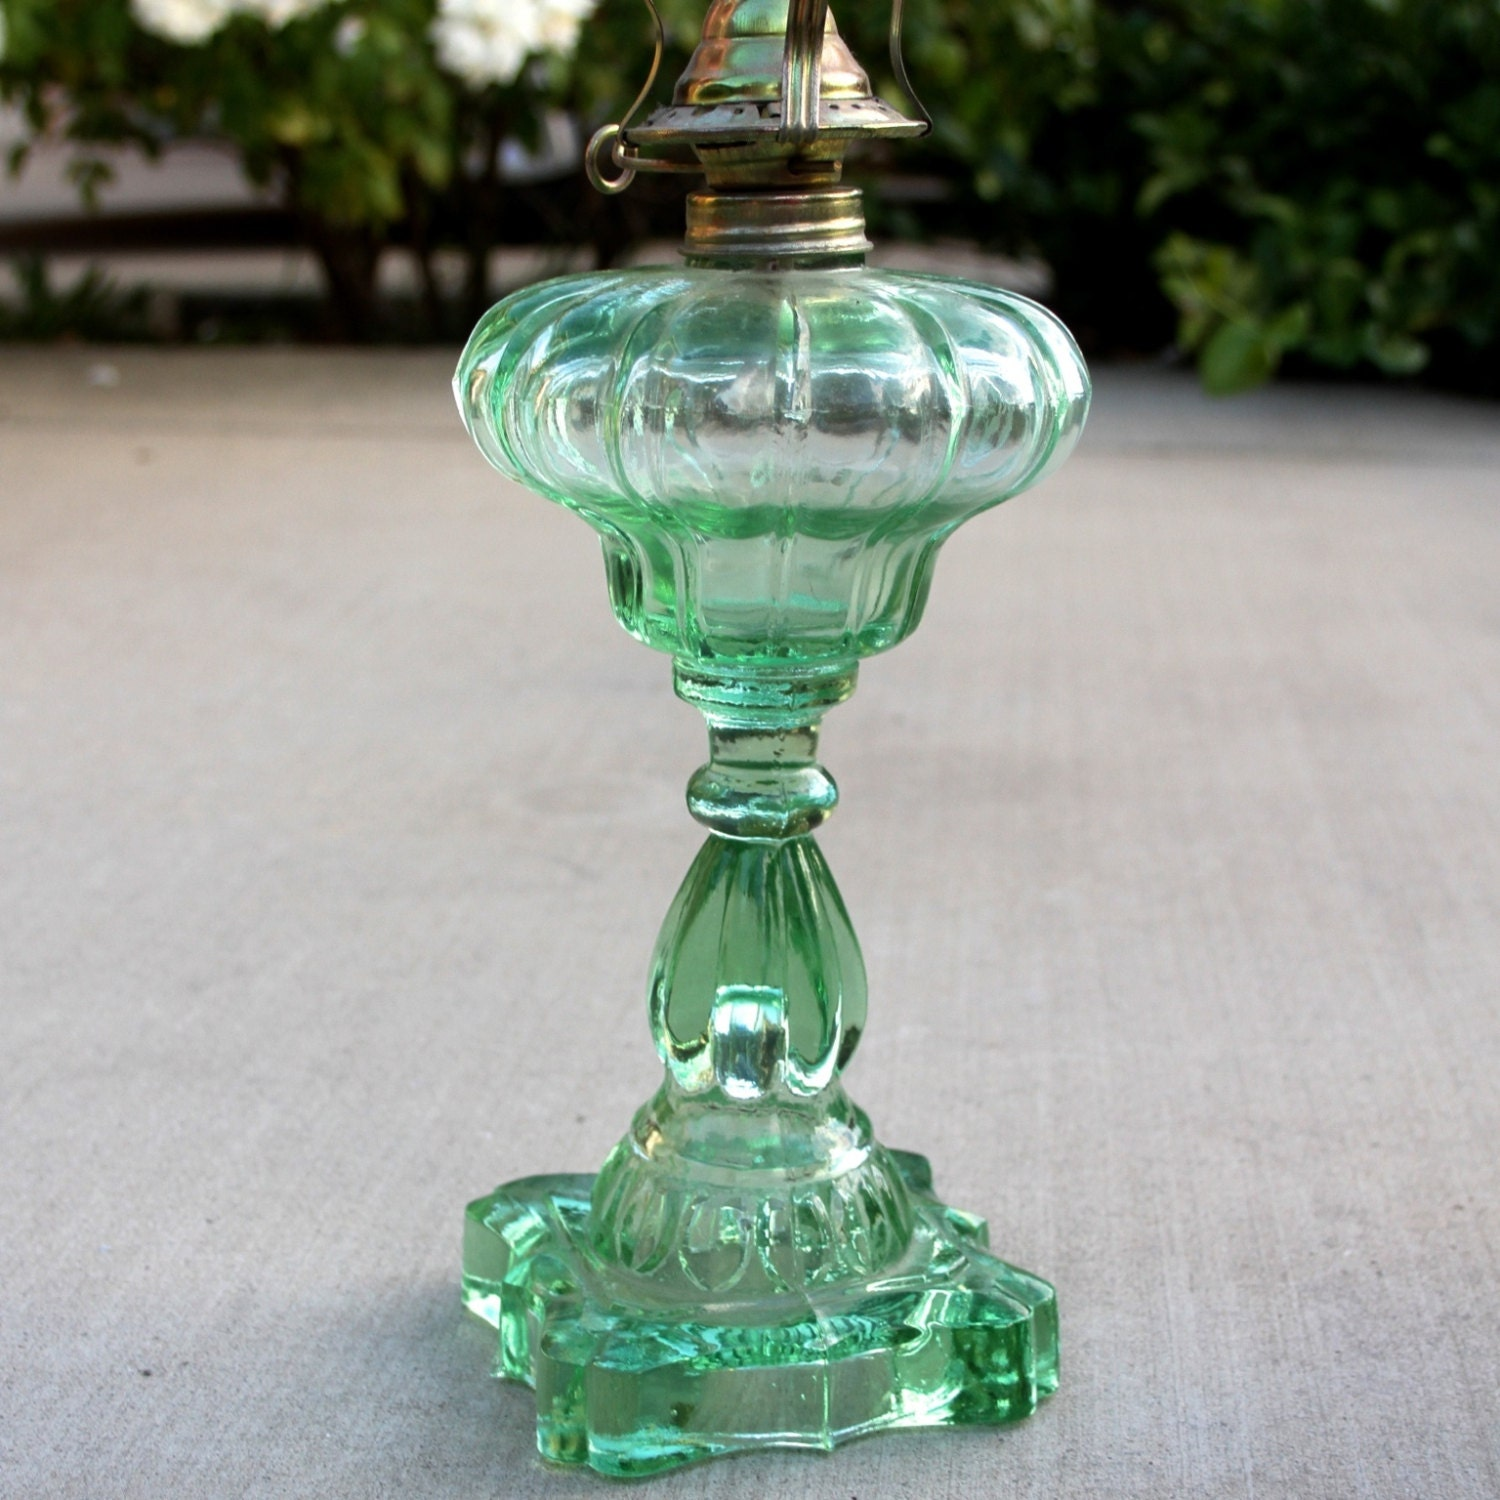 vintage pressed glass kerosene lamp